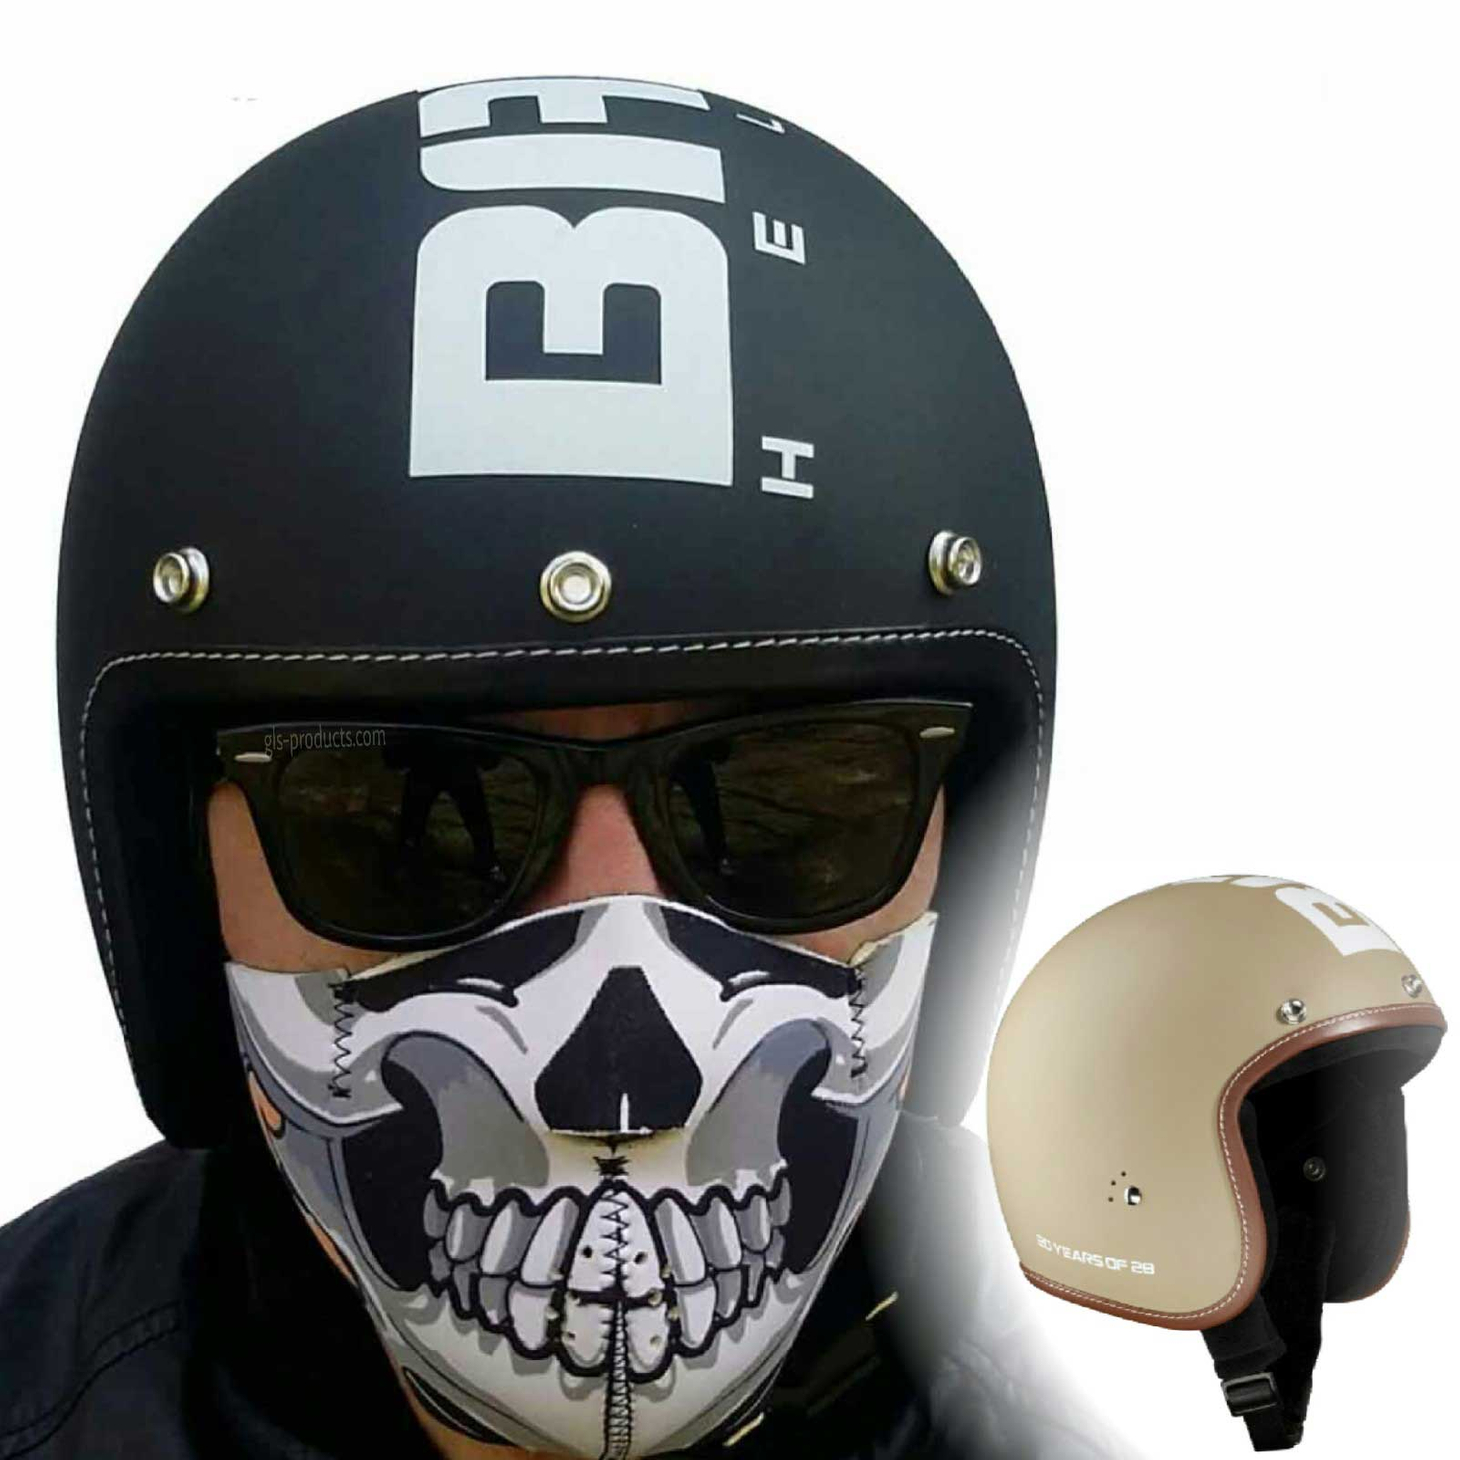 Bandit 20 Years Anniversary open face helmet – Picture 1